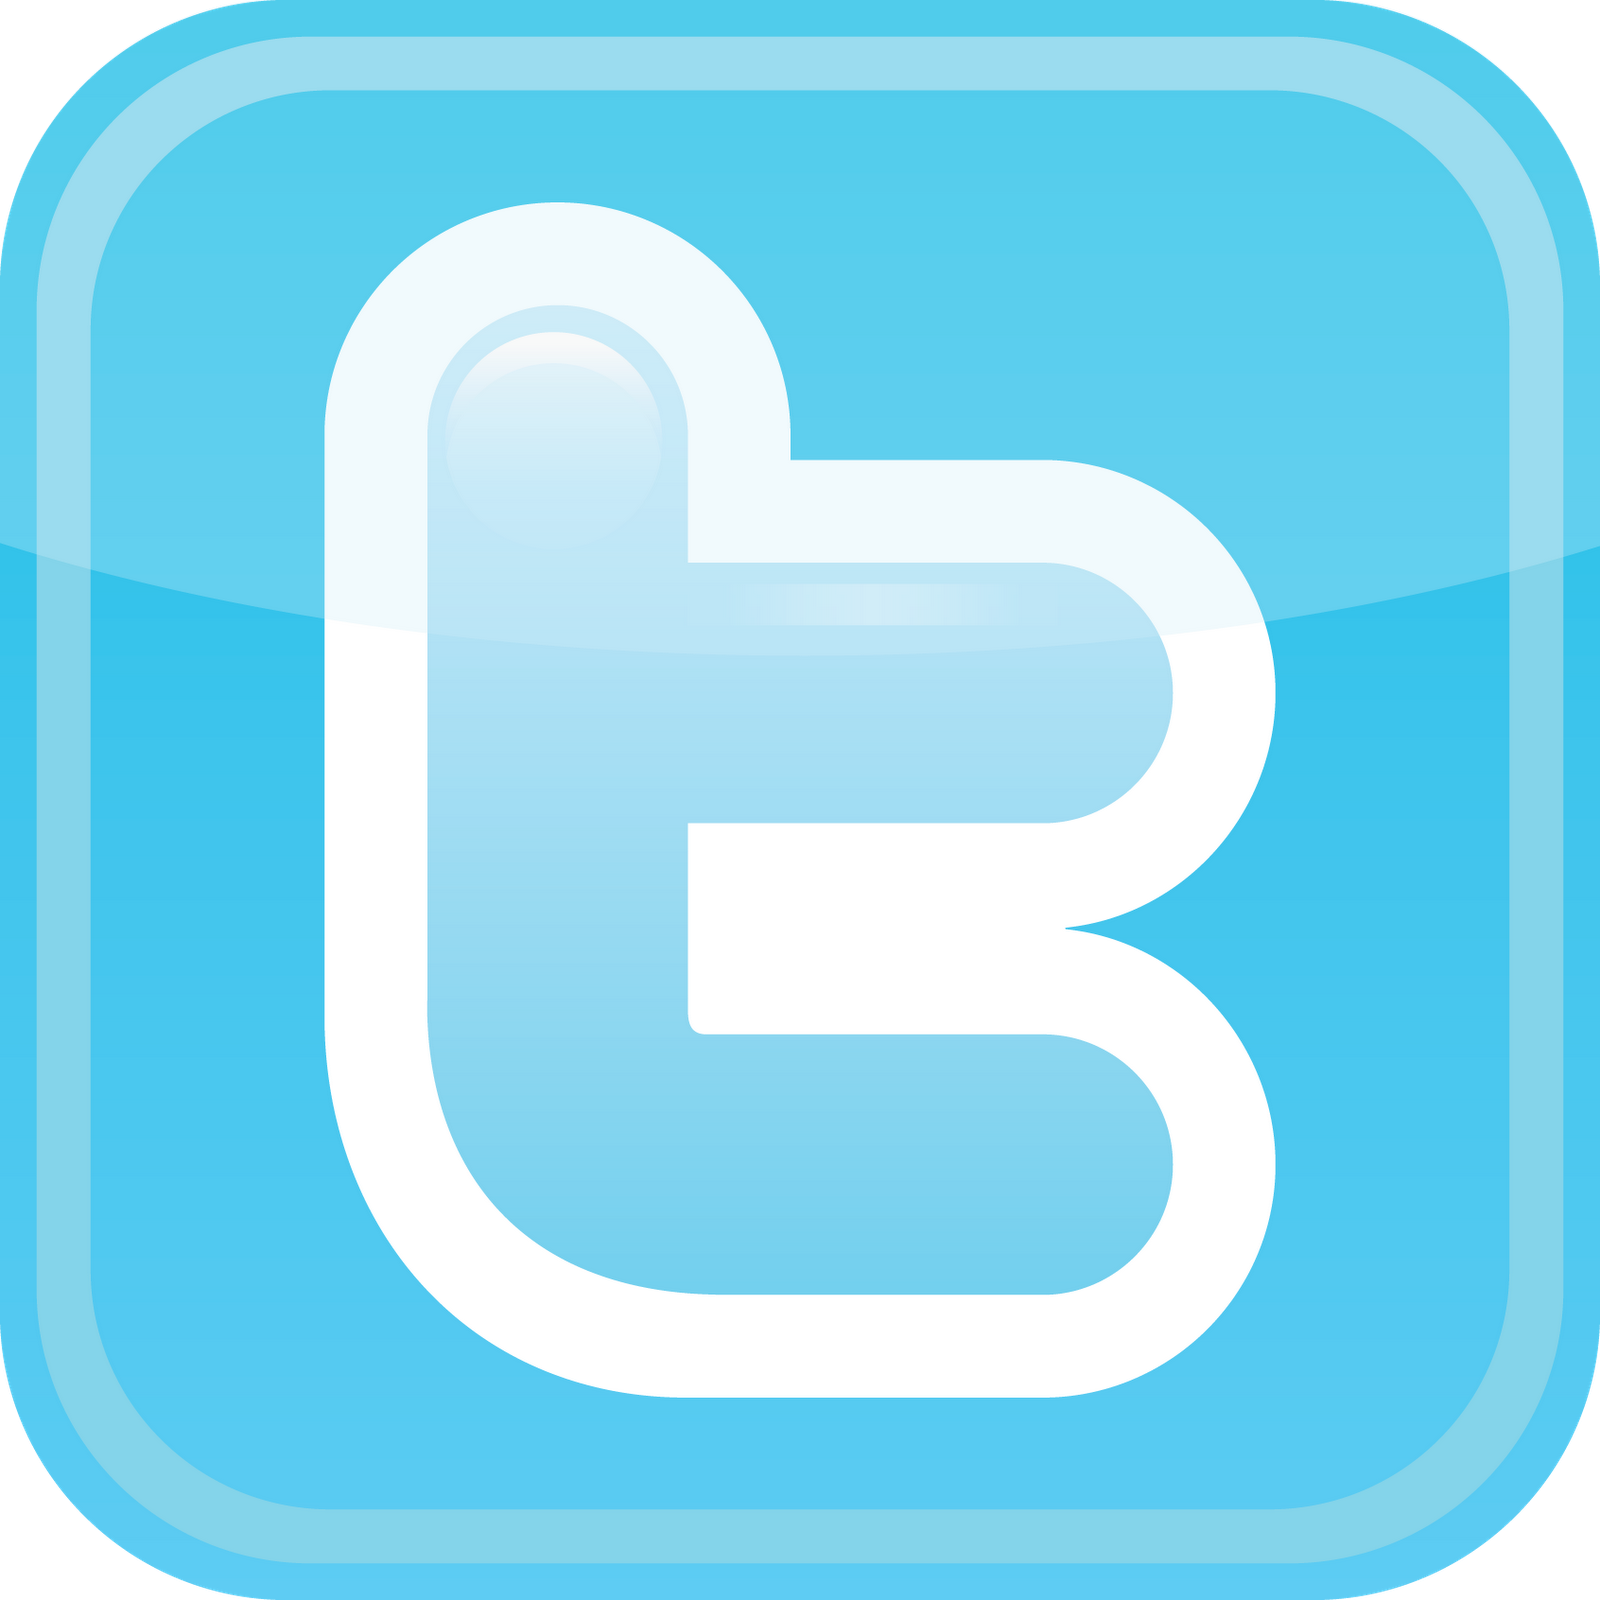 twitter-logo-png-transparent-backgroundblog-damee-new-york-arkcwwv6.png